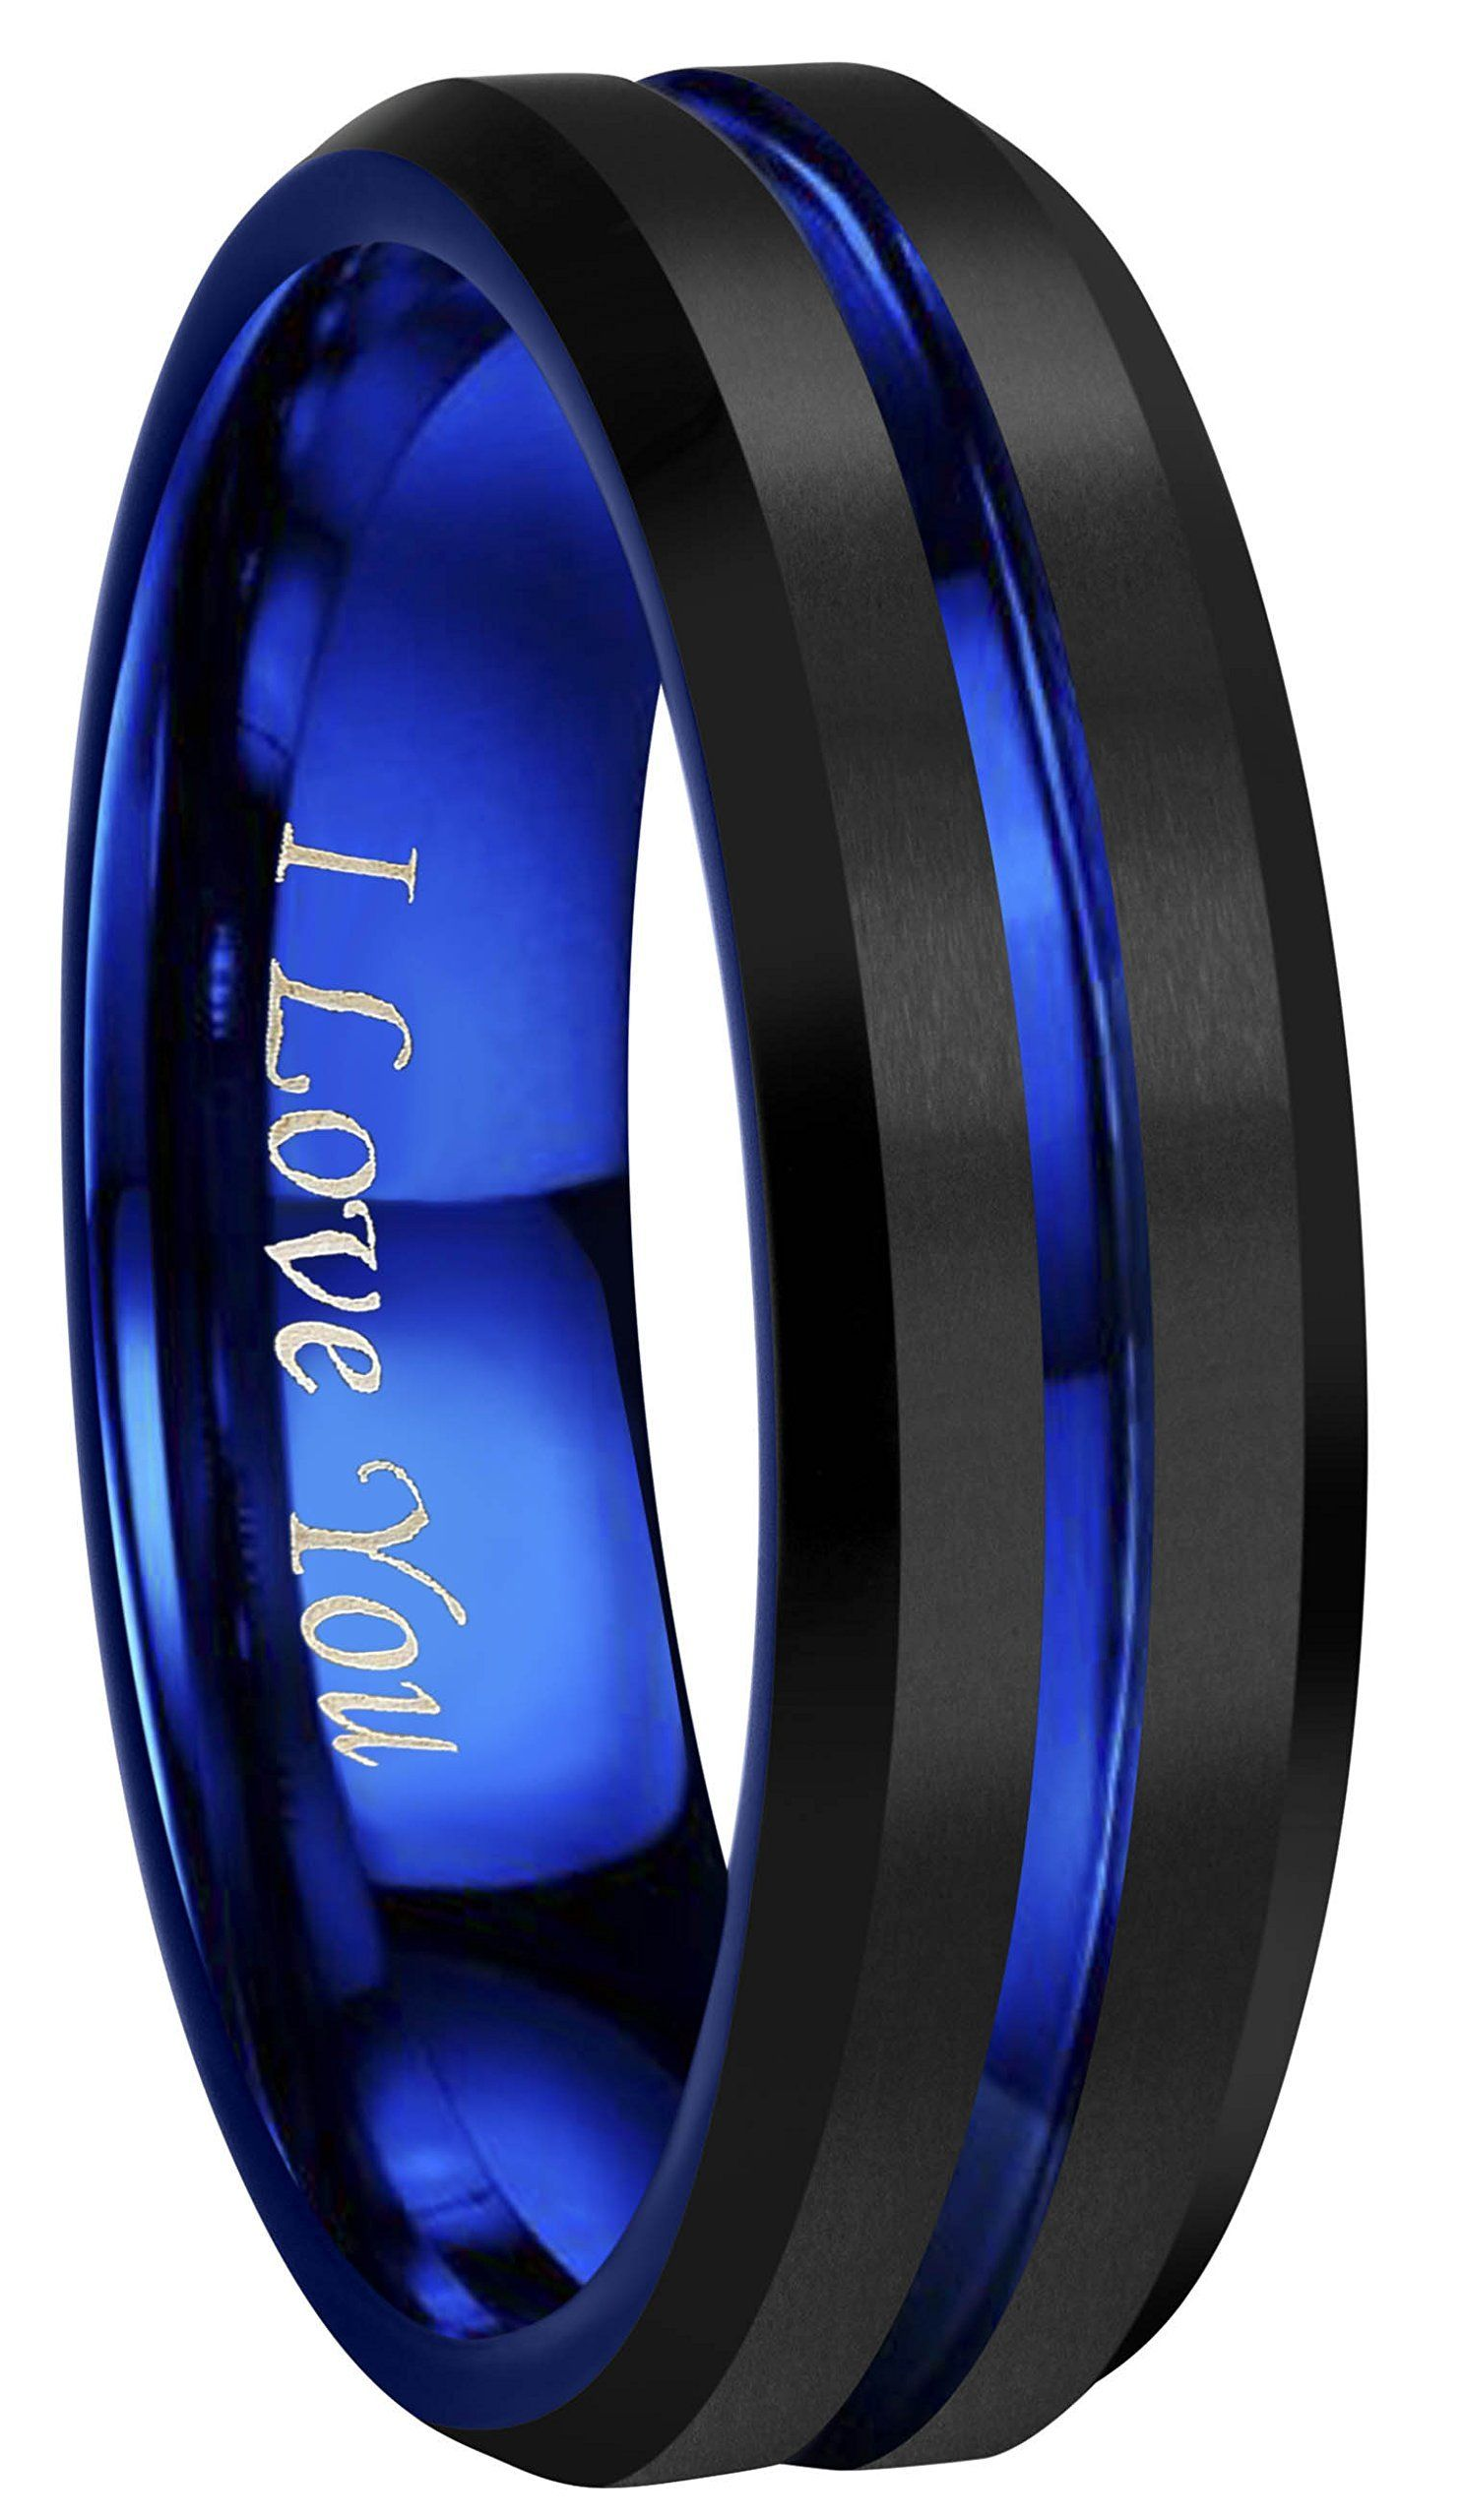 CROWNAL 4mm 6mm 8mm 10mm Blue Groove Black Matte Finish